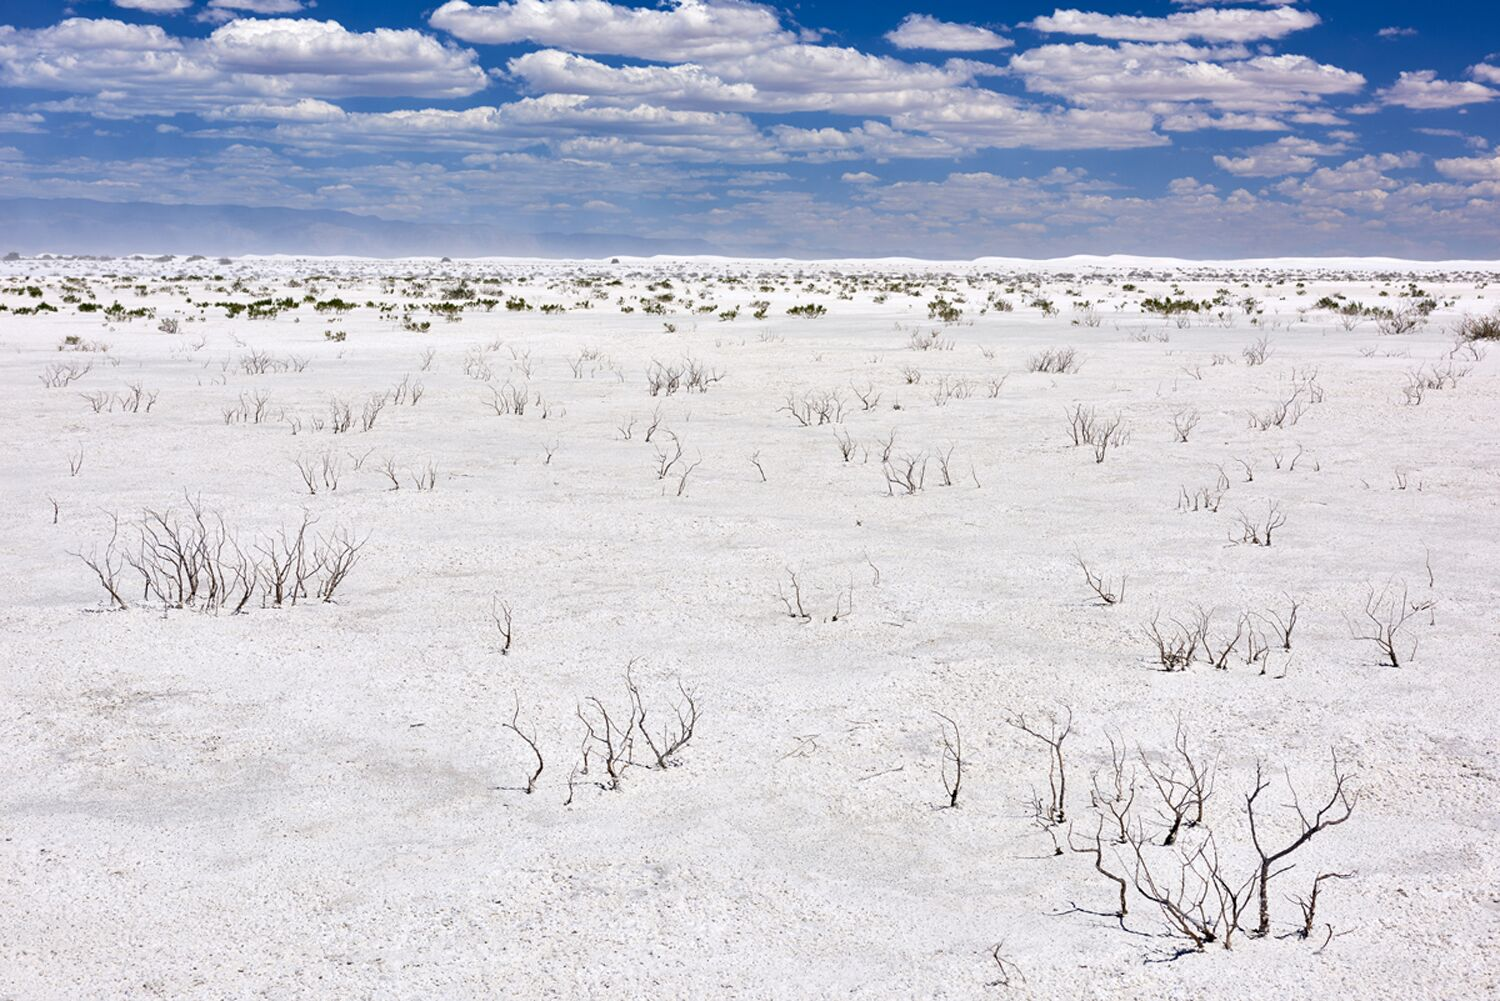 Iodine Bush on Alkali Flats facing Dune Field, Summer, White Sands National Monument, New Mexico